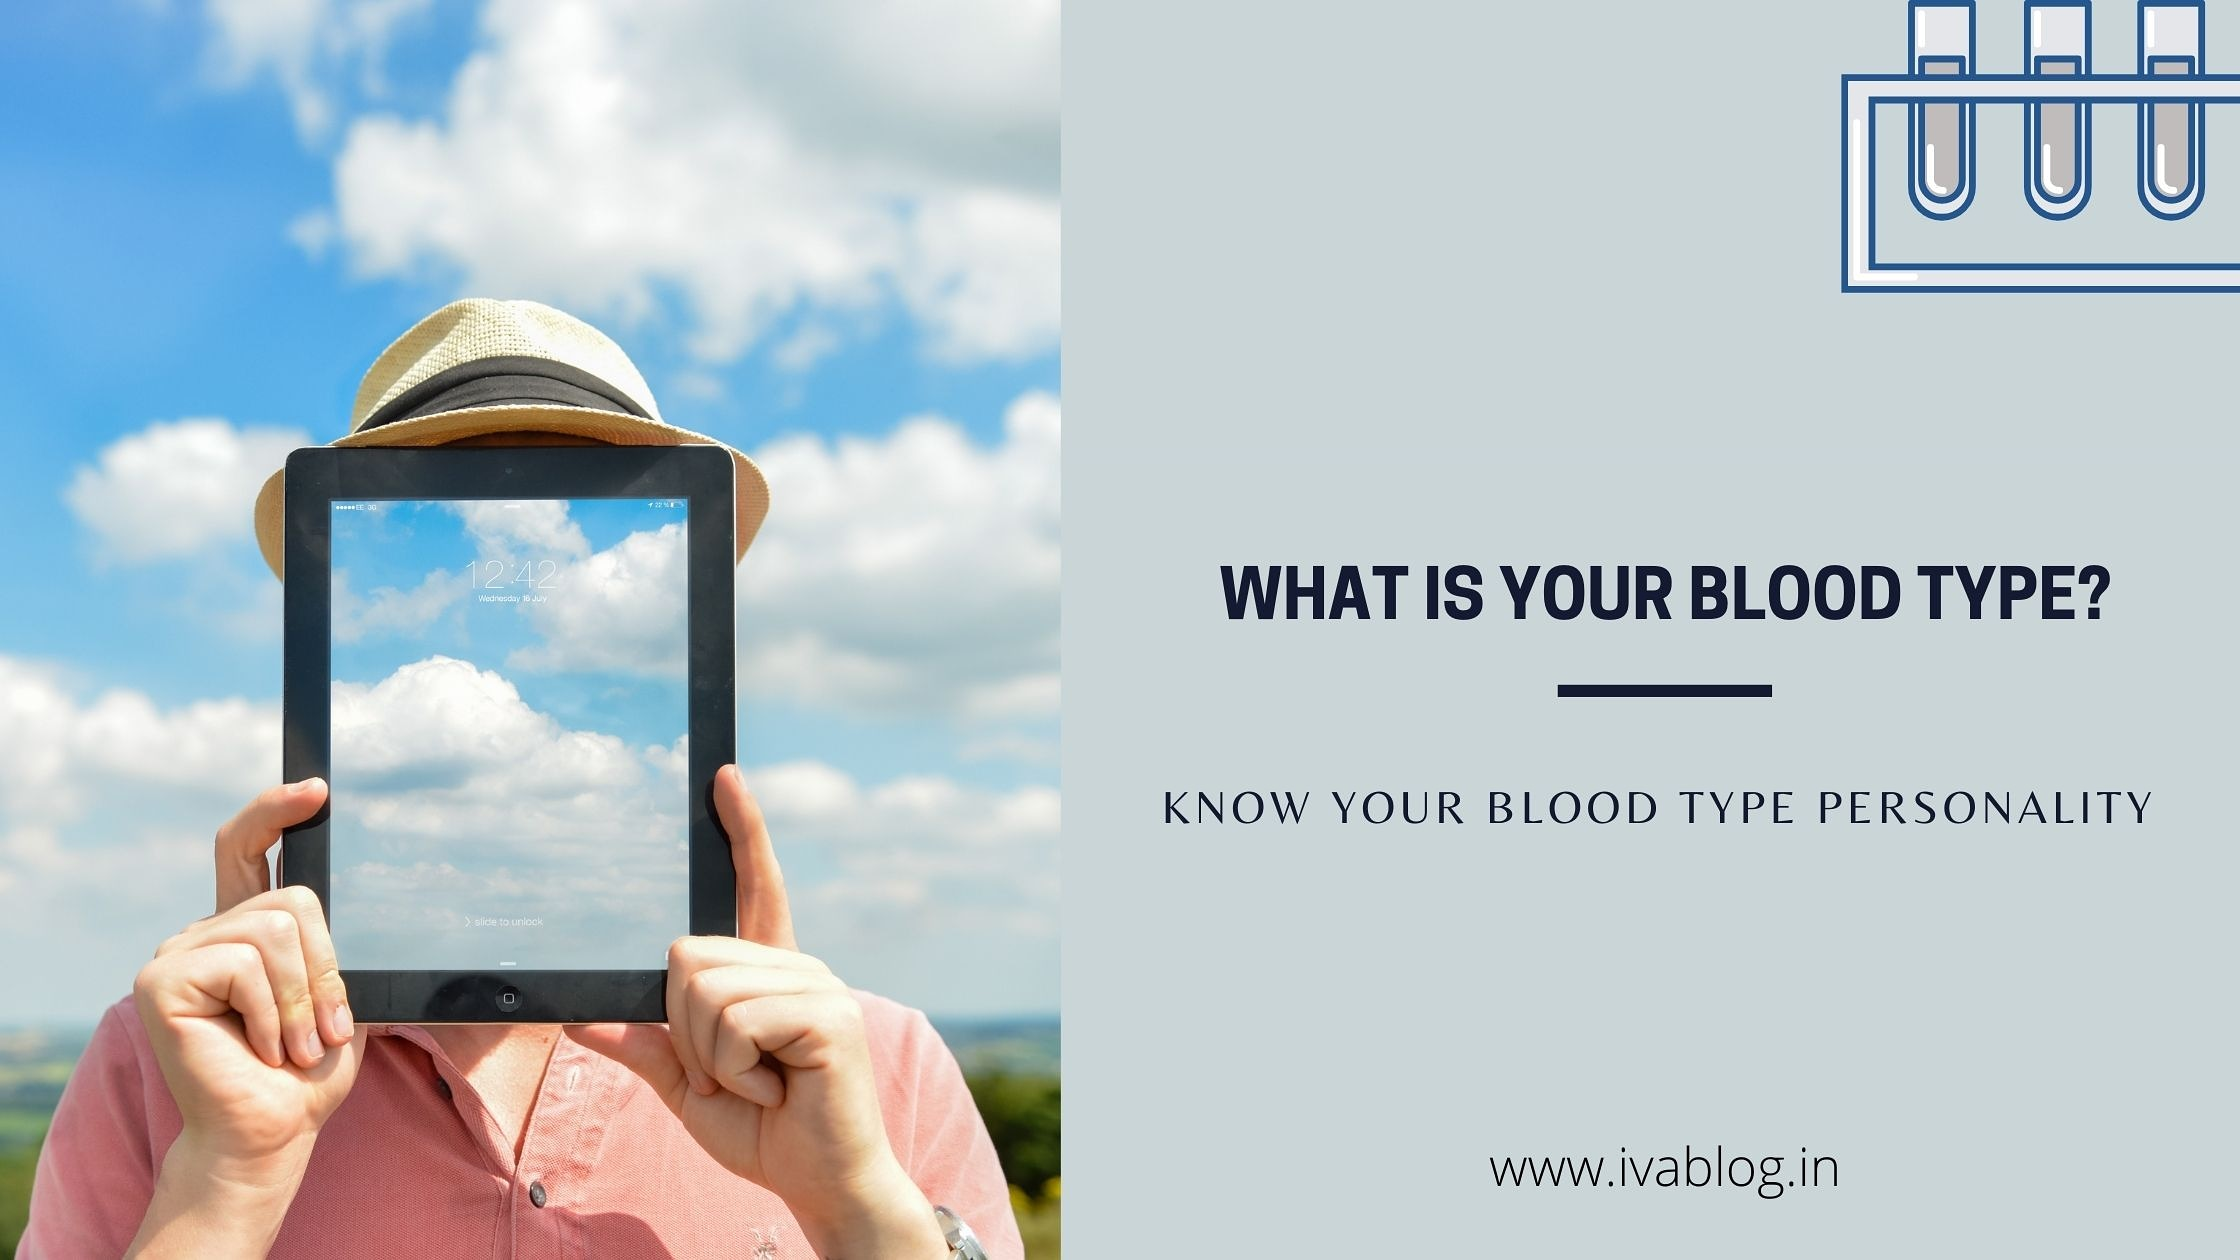 Do You Know Your Blood Type Personality?